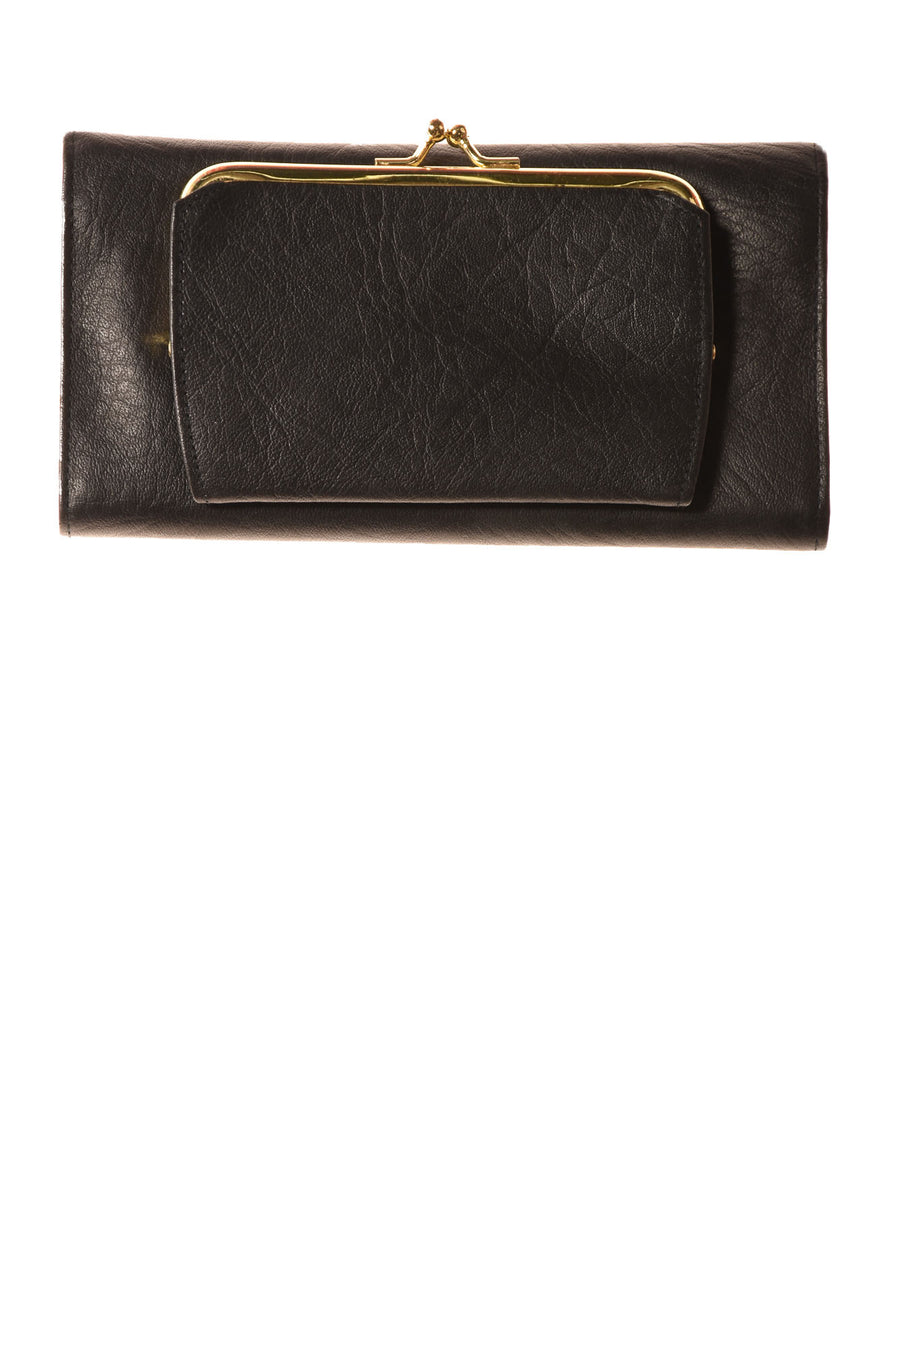 USED Buxton Women's Wallet N/A Black